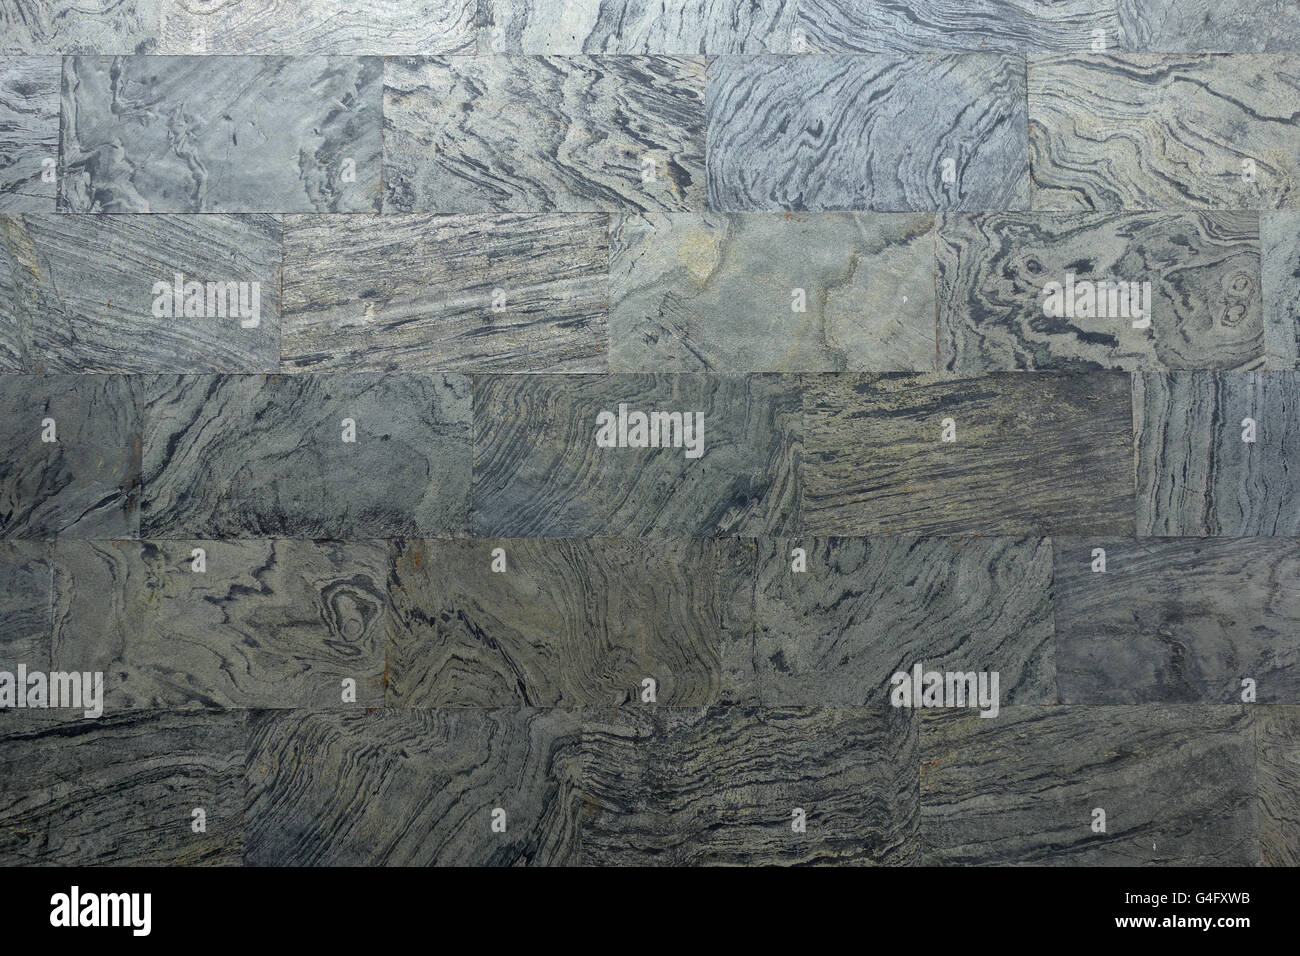 Marble tile architectural cladding background Stock Photo